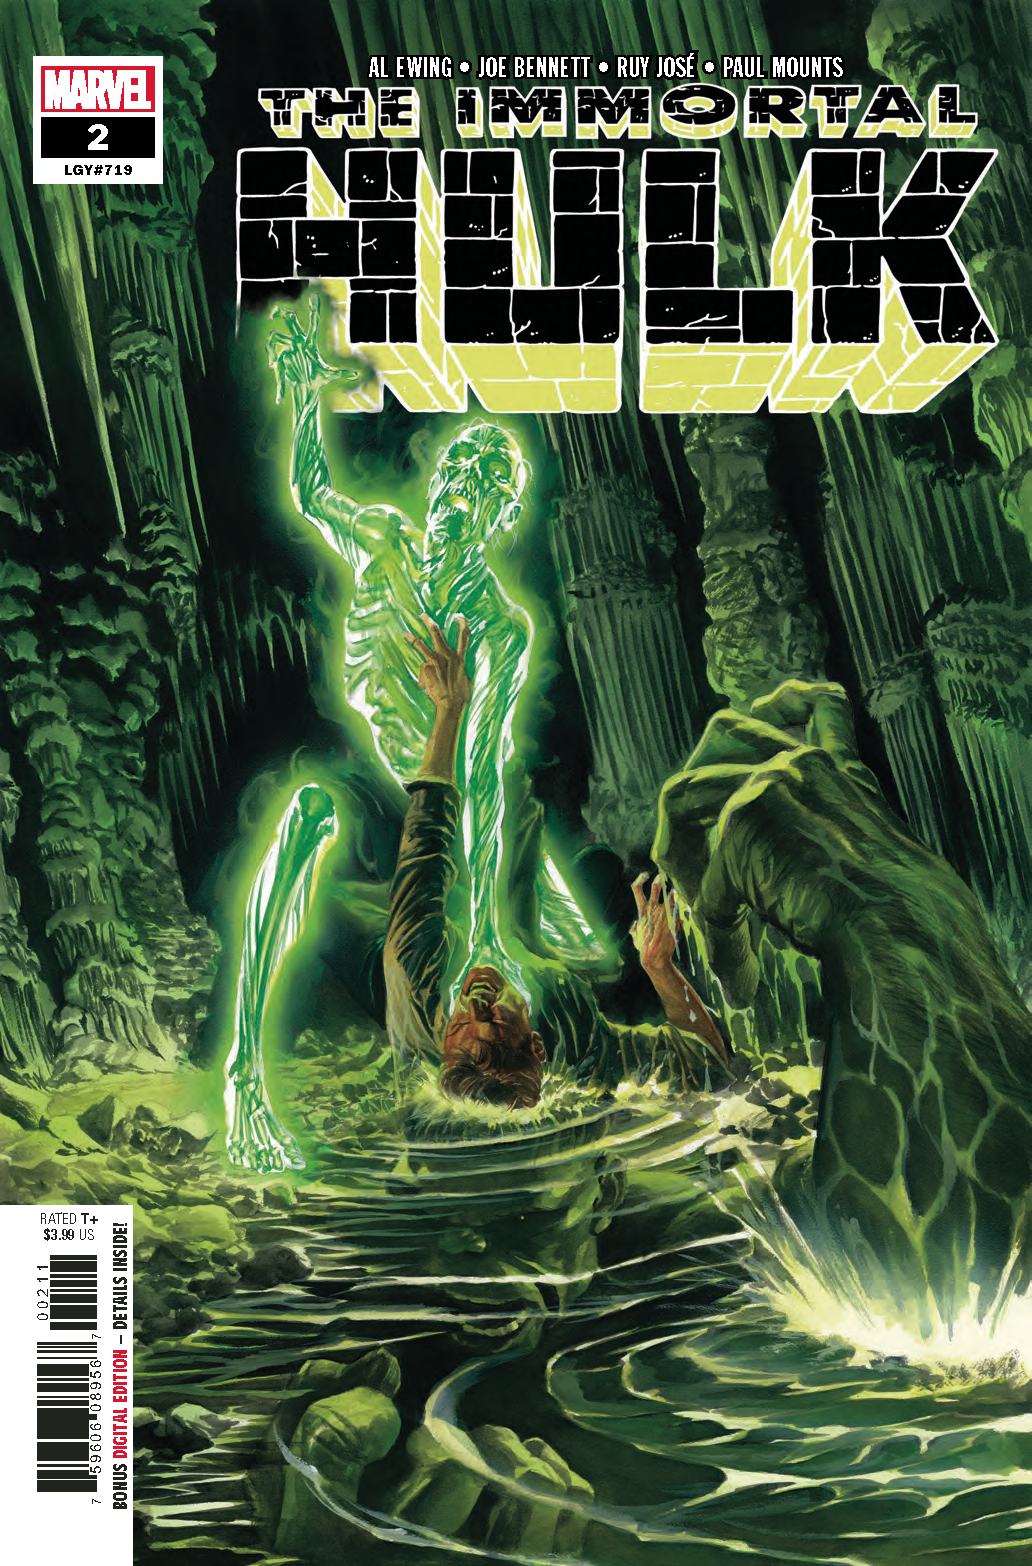 IMMORTAL HULK #2